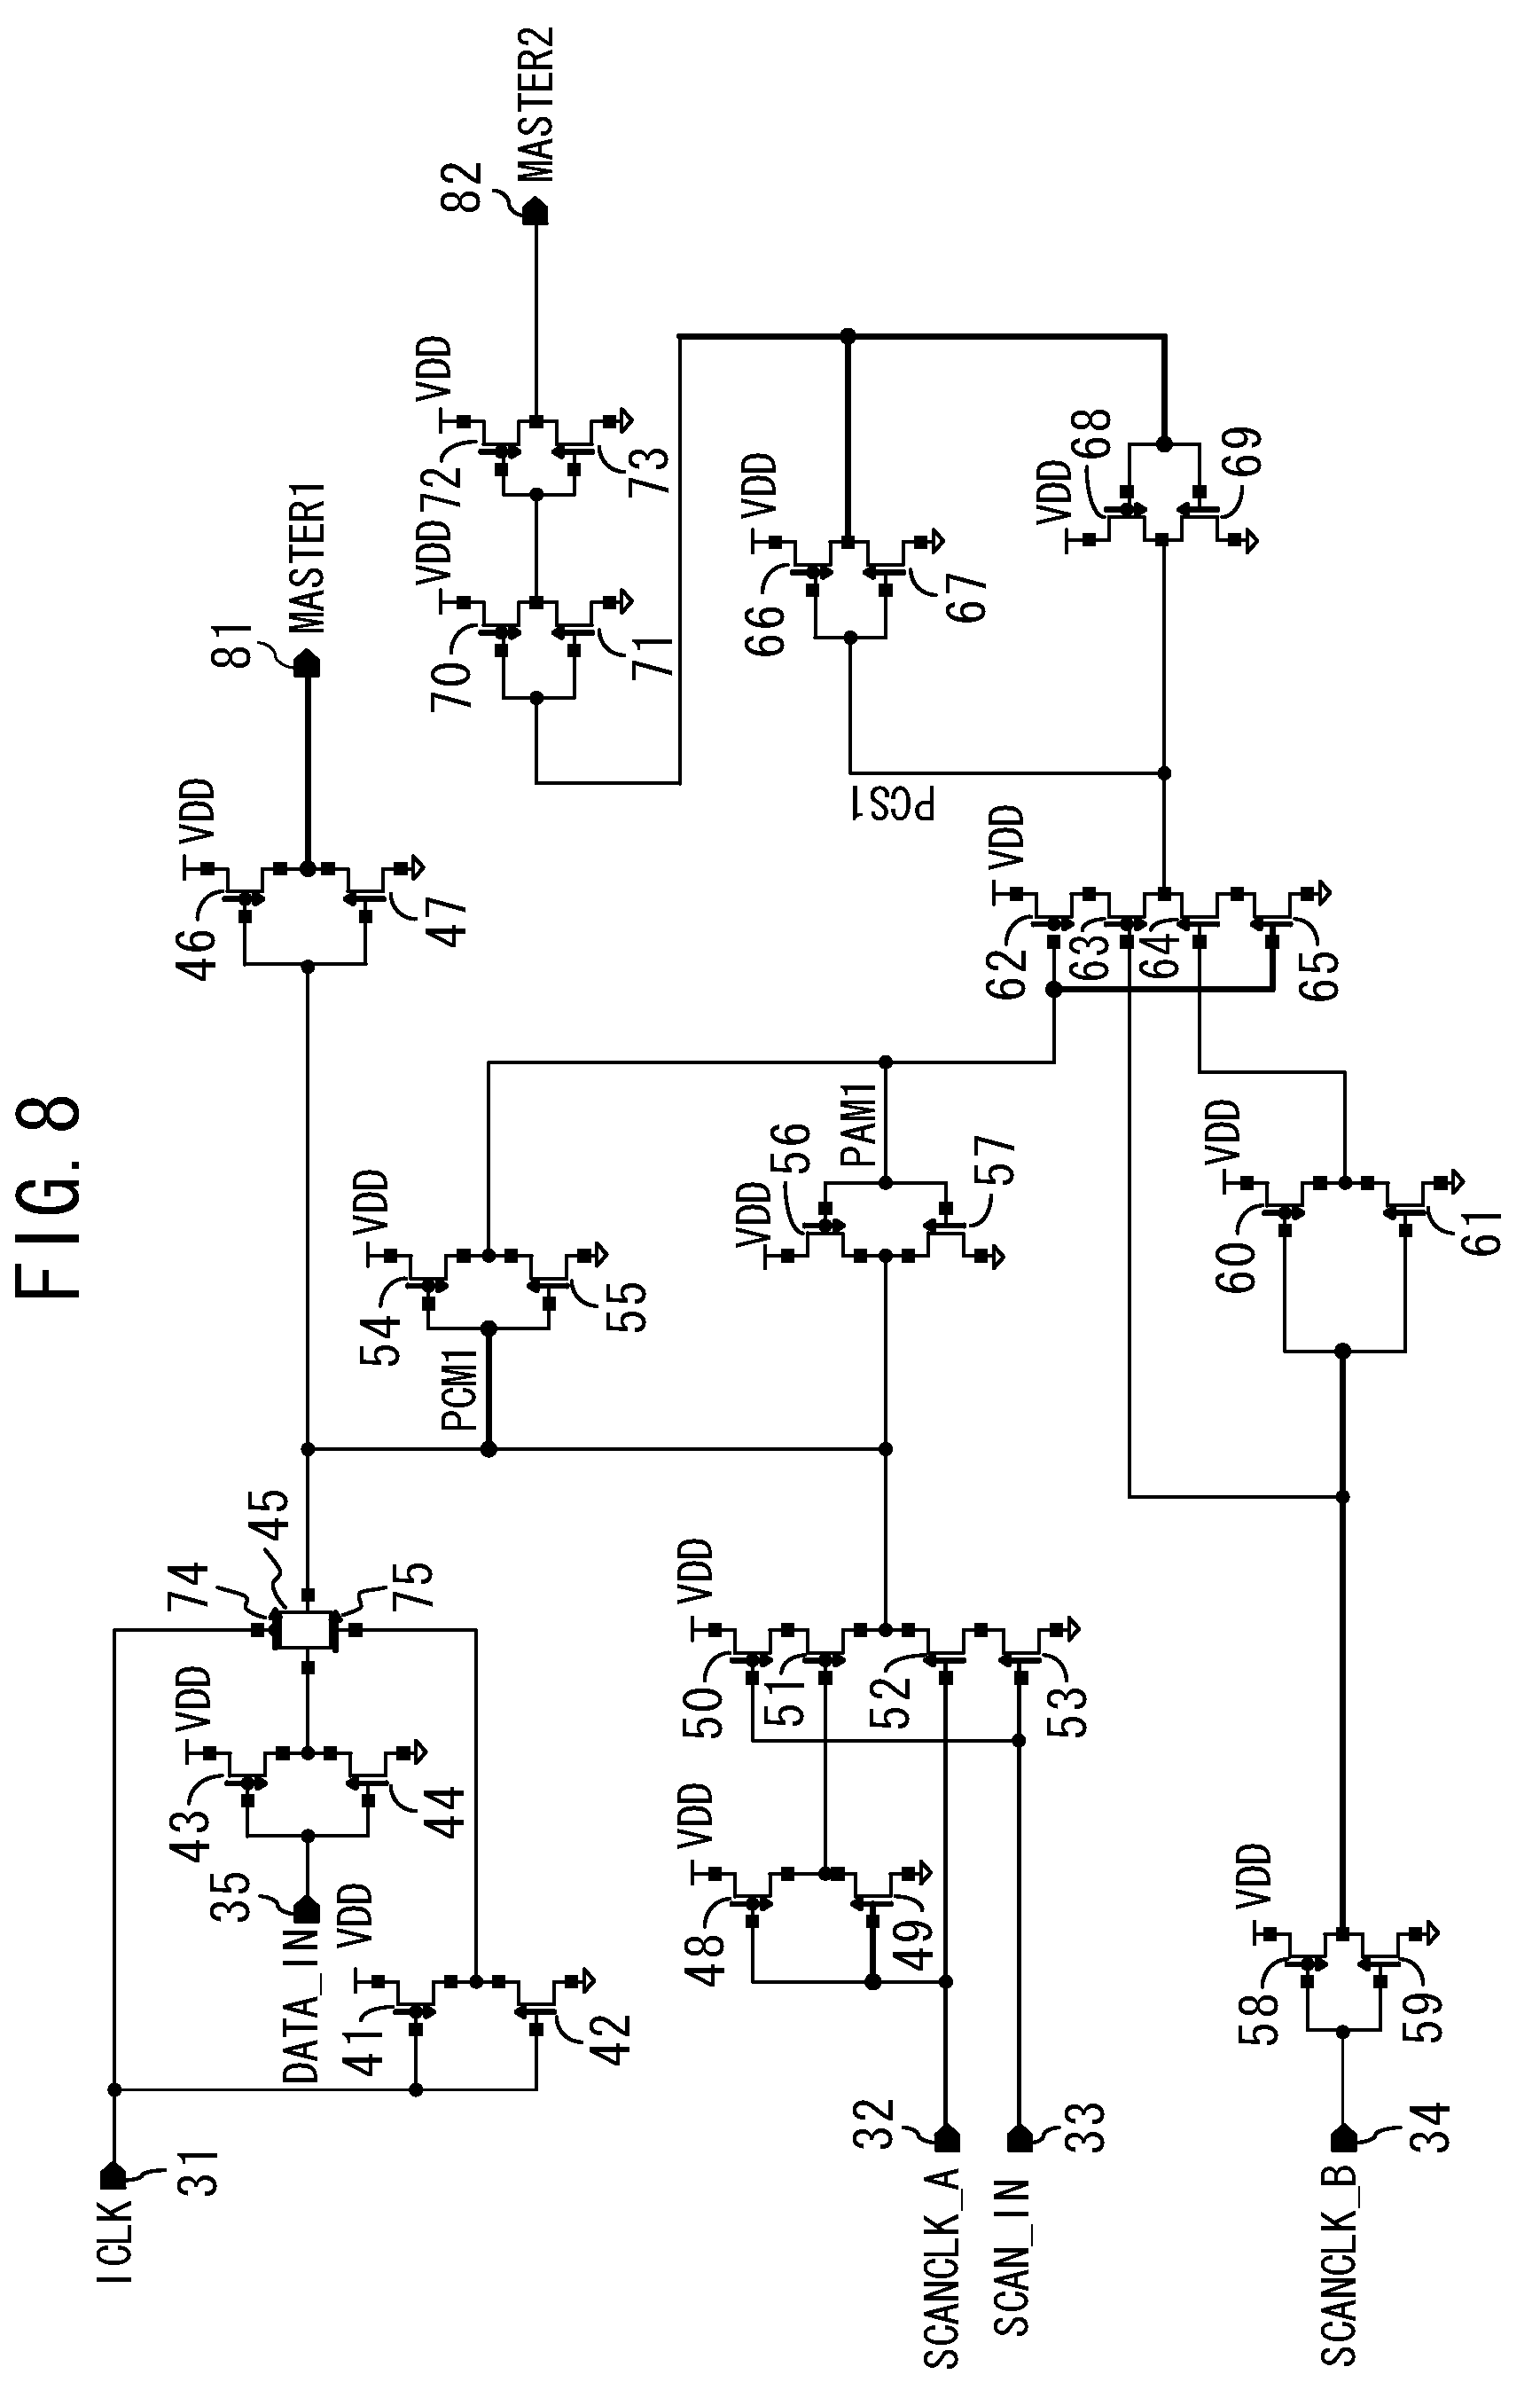 latching circuit diagram  latching  free engine image for